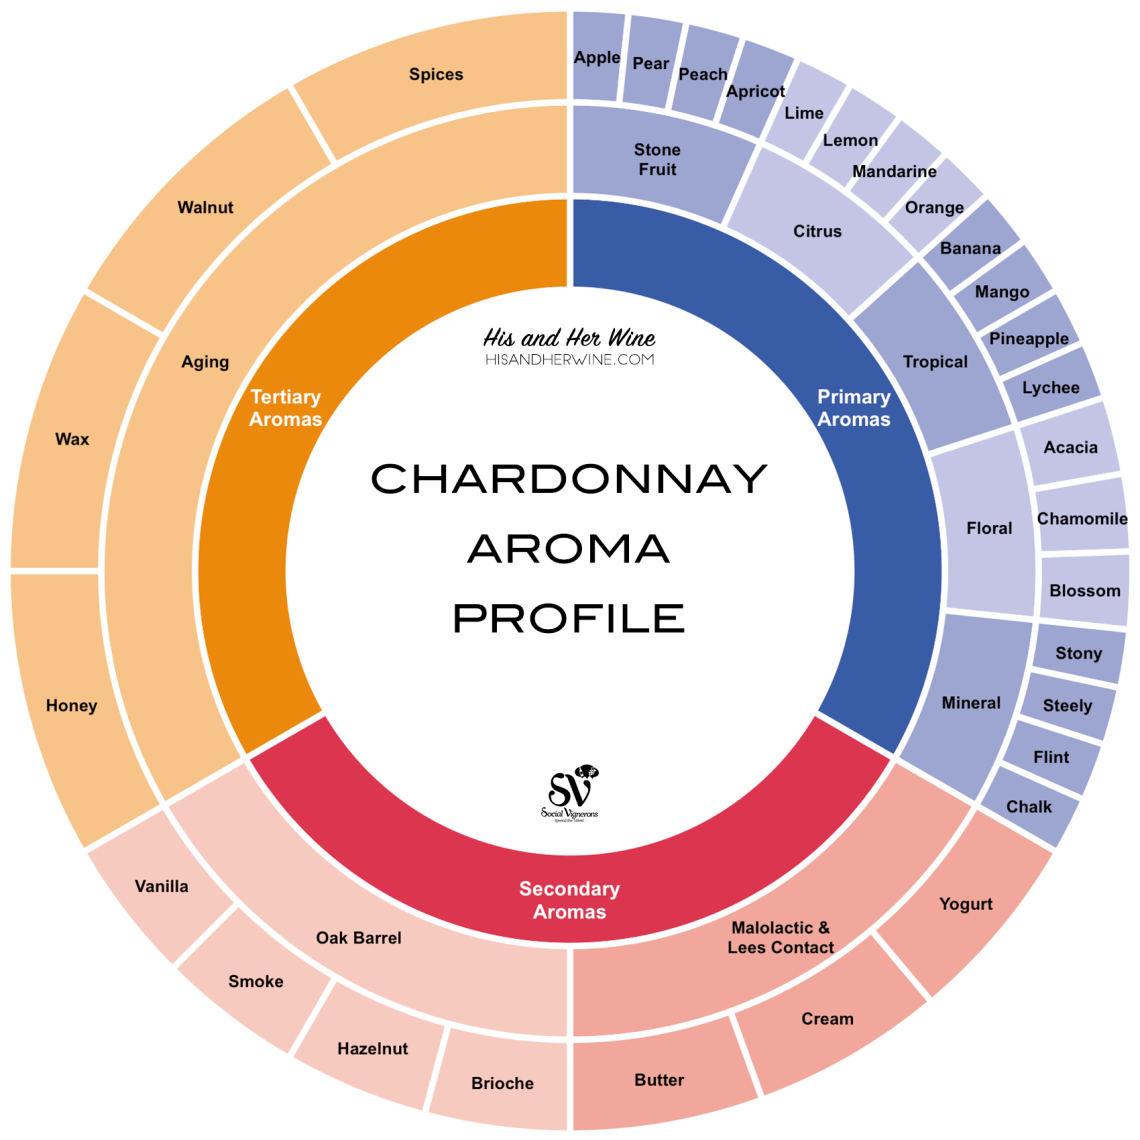 An info graphic by Social Vignerons showing different wine-making techniques of Chardonnay and their typical aromas.